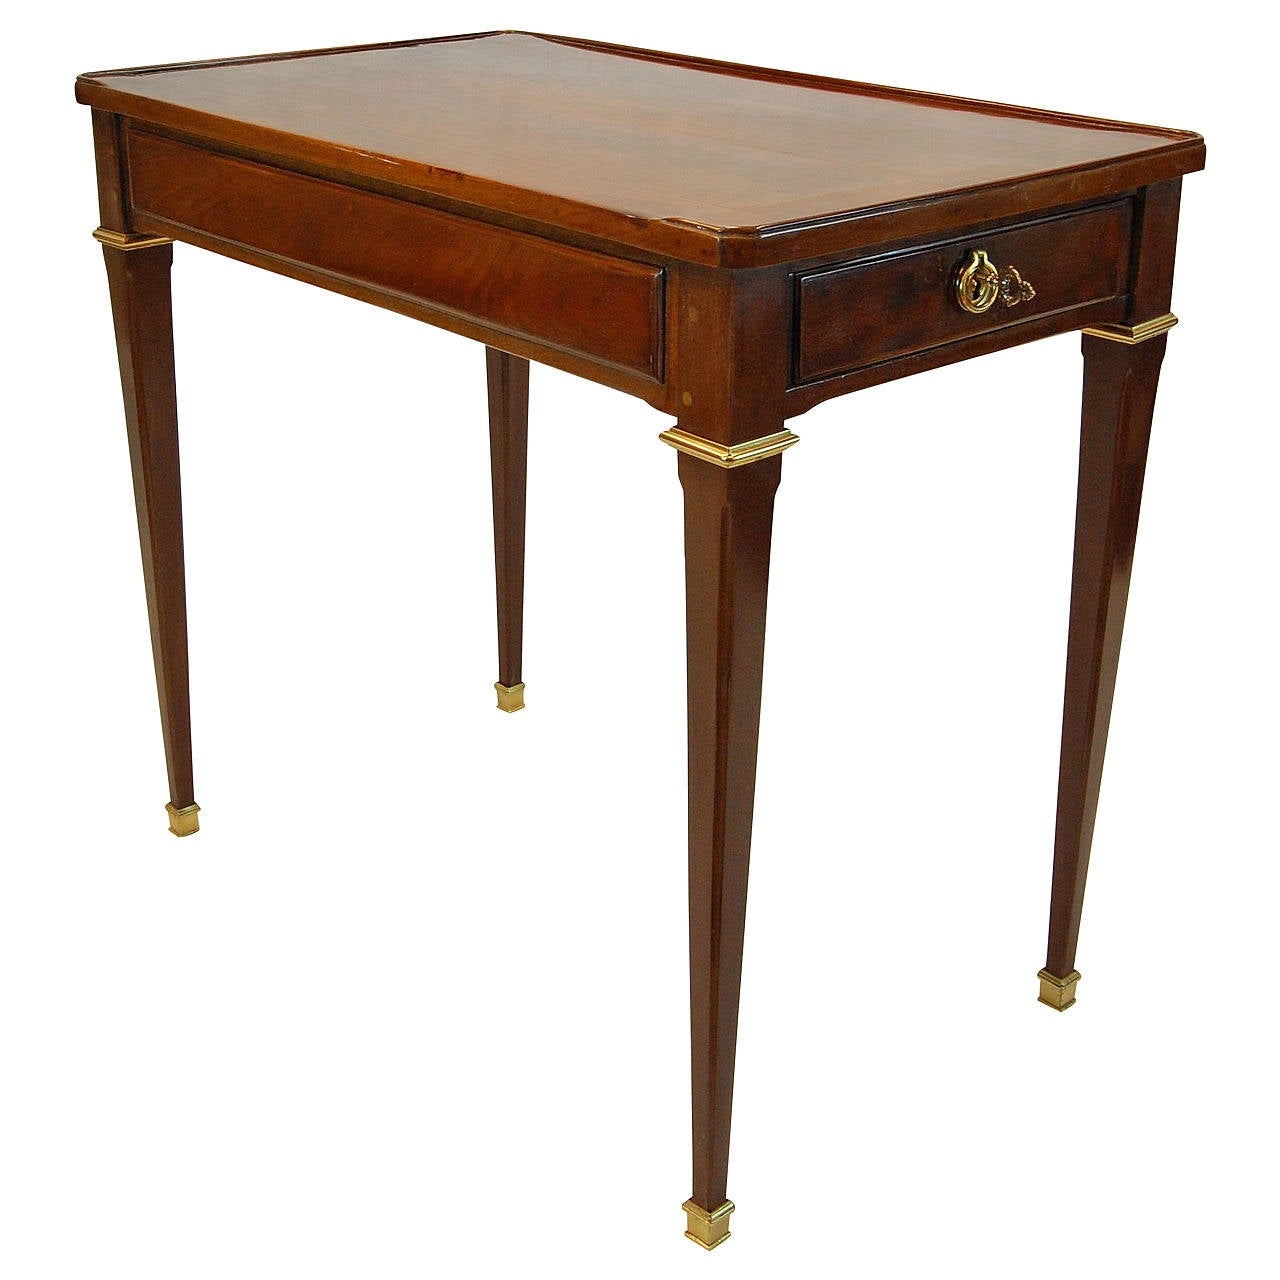 royal louis xvi mahogany table ecrire circa 1787 stamped riesener at 1stdibs. Black Bedroom Furniture Sets. Home Design Ideas